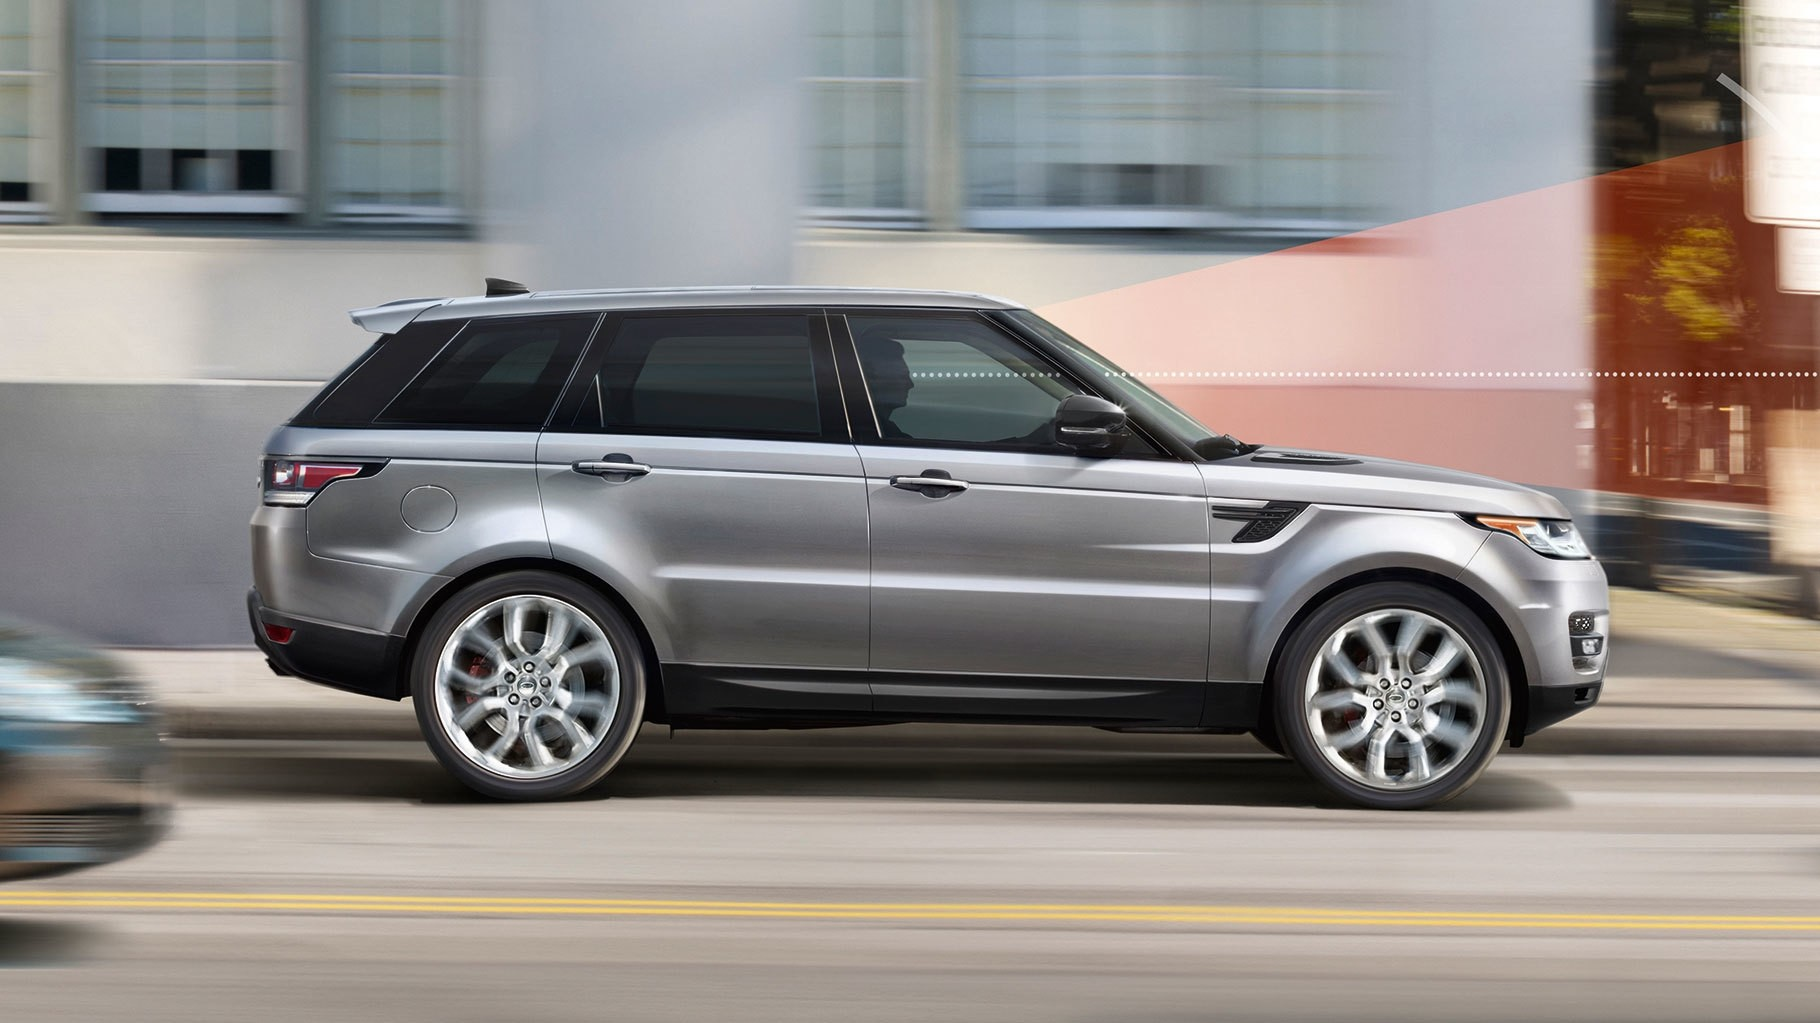 2017 Land Rover Range Rover Sport Exterior Side Profile